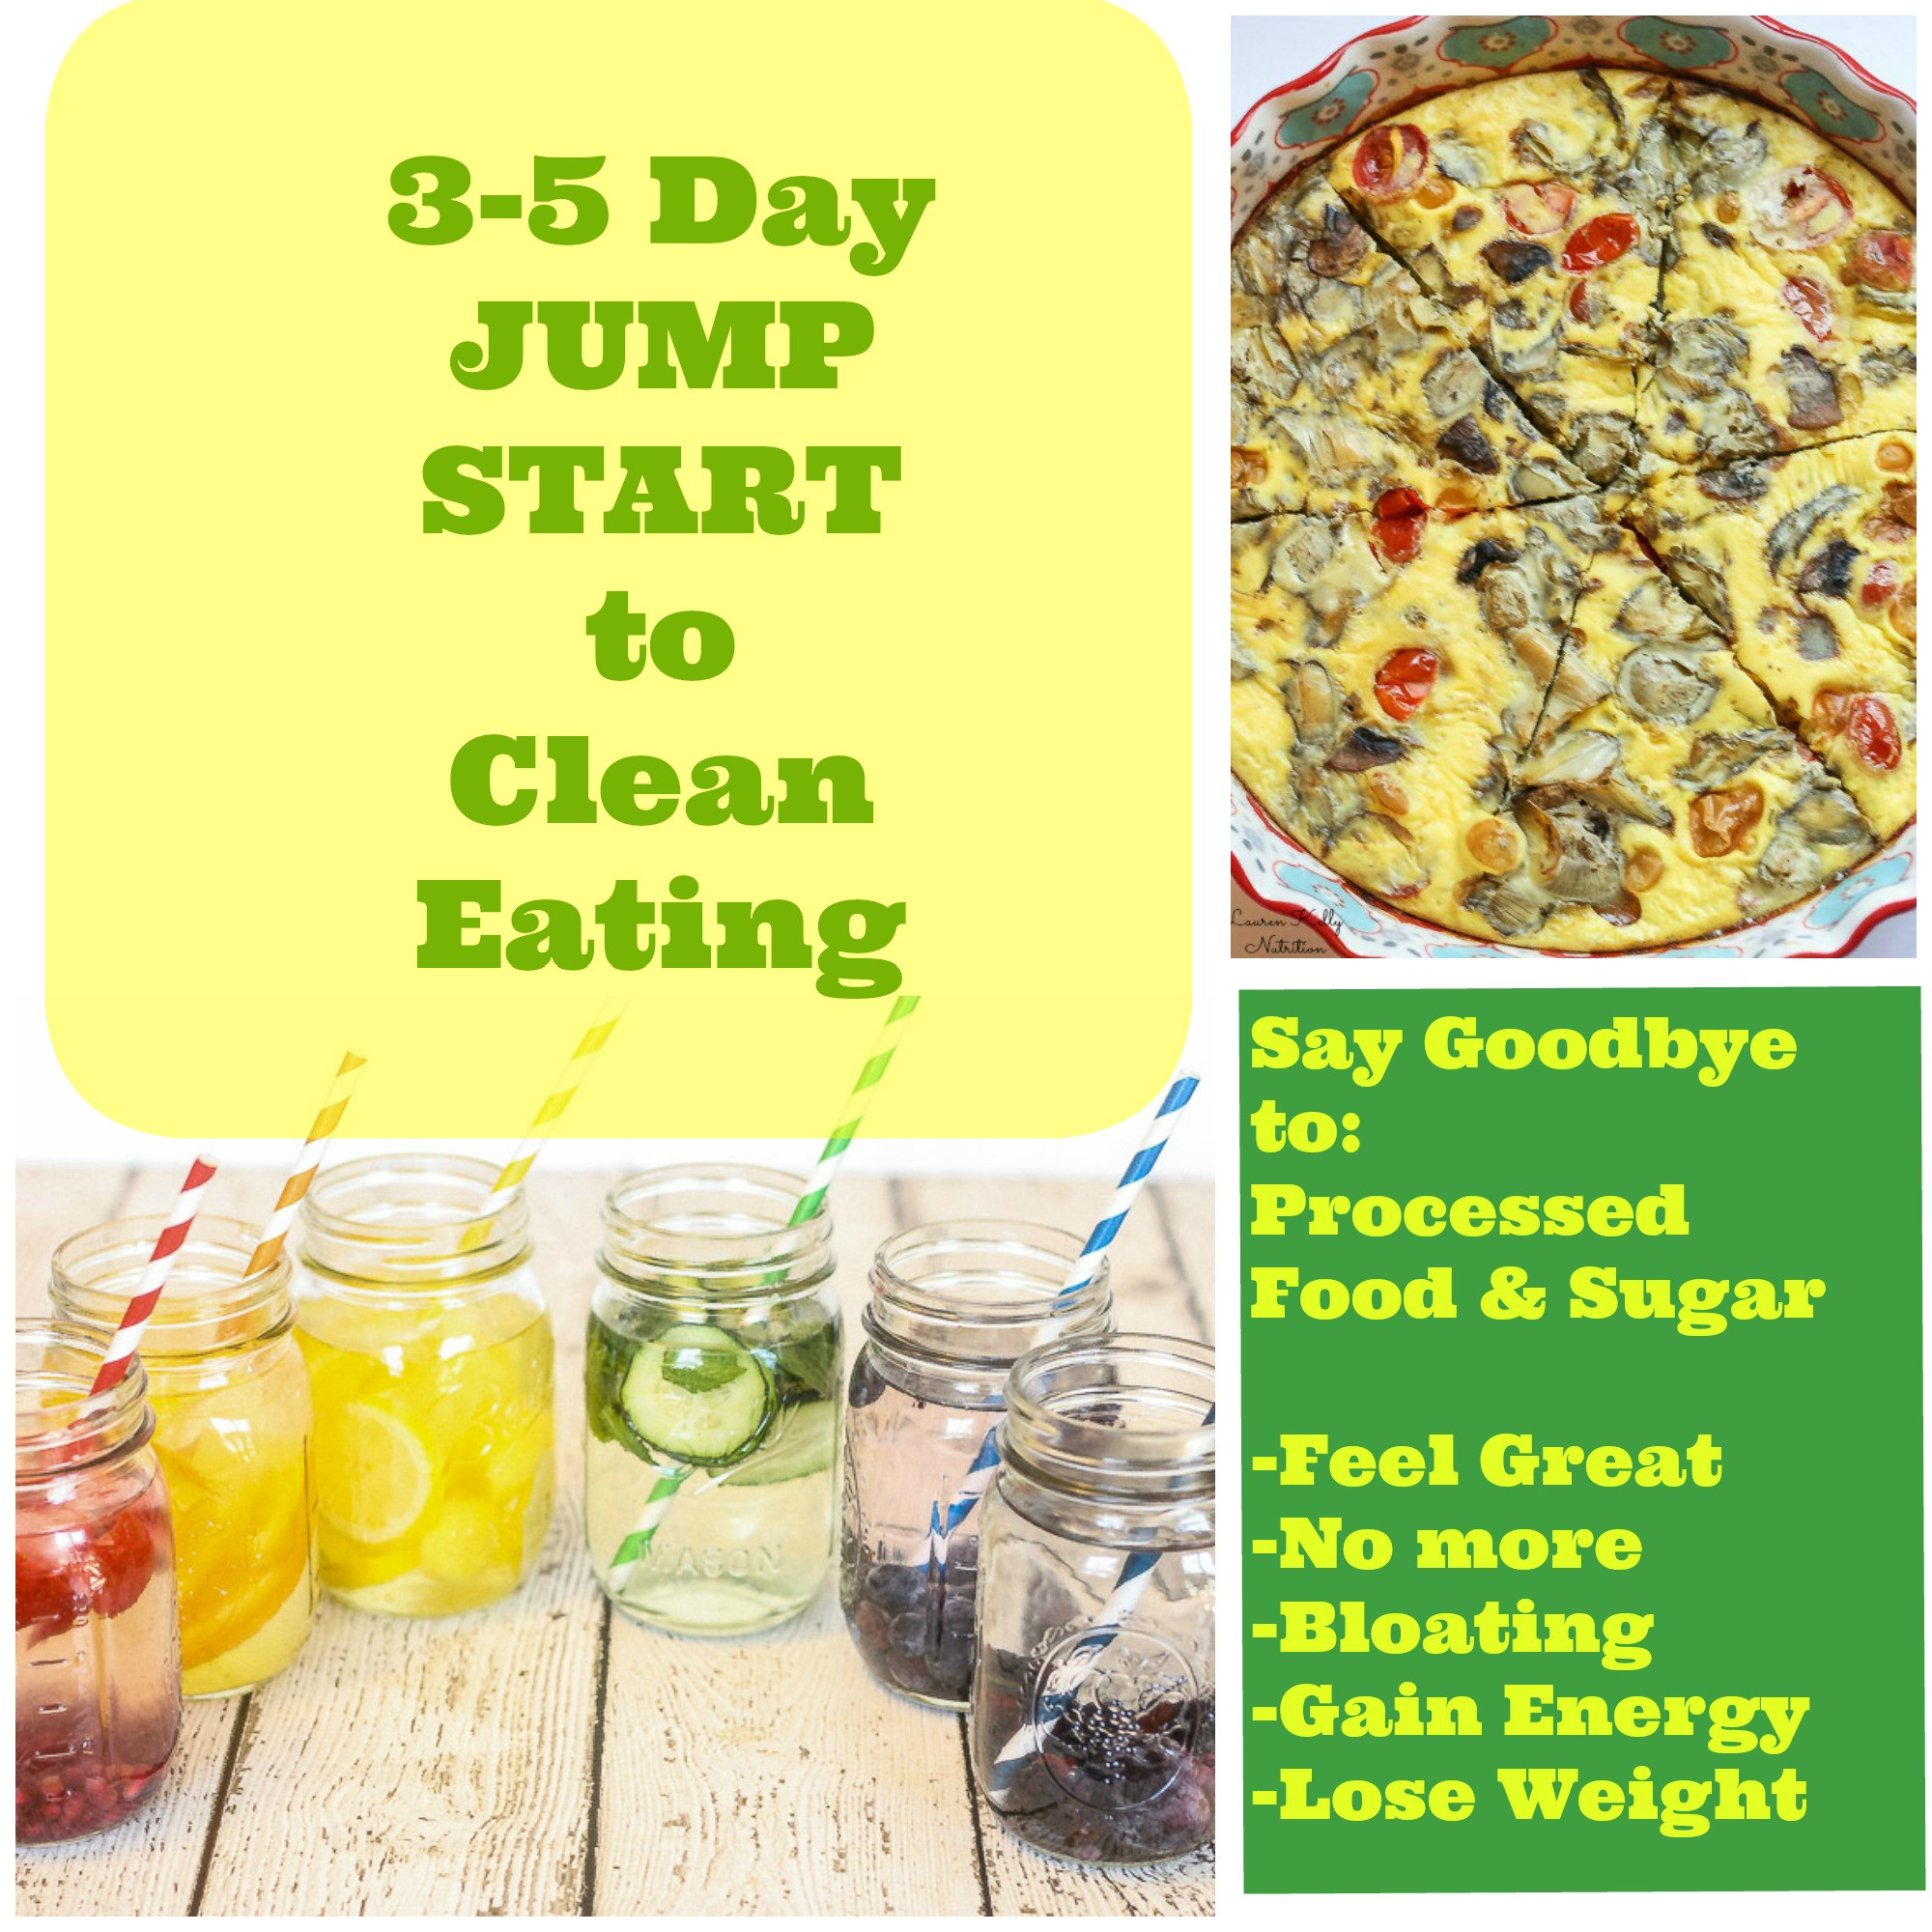 Clean Eating Diet Weight Loss  Three – Five Day Jump Start to Clean Eating and Grocery List